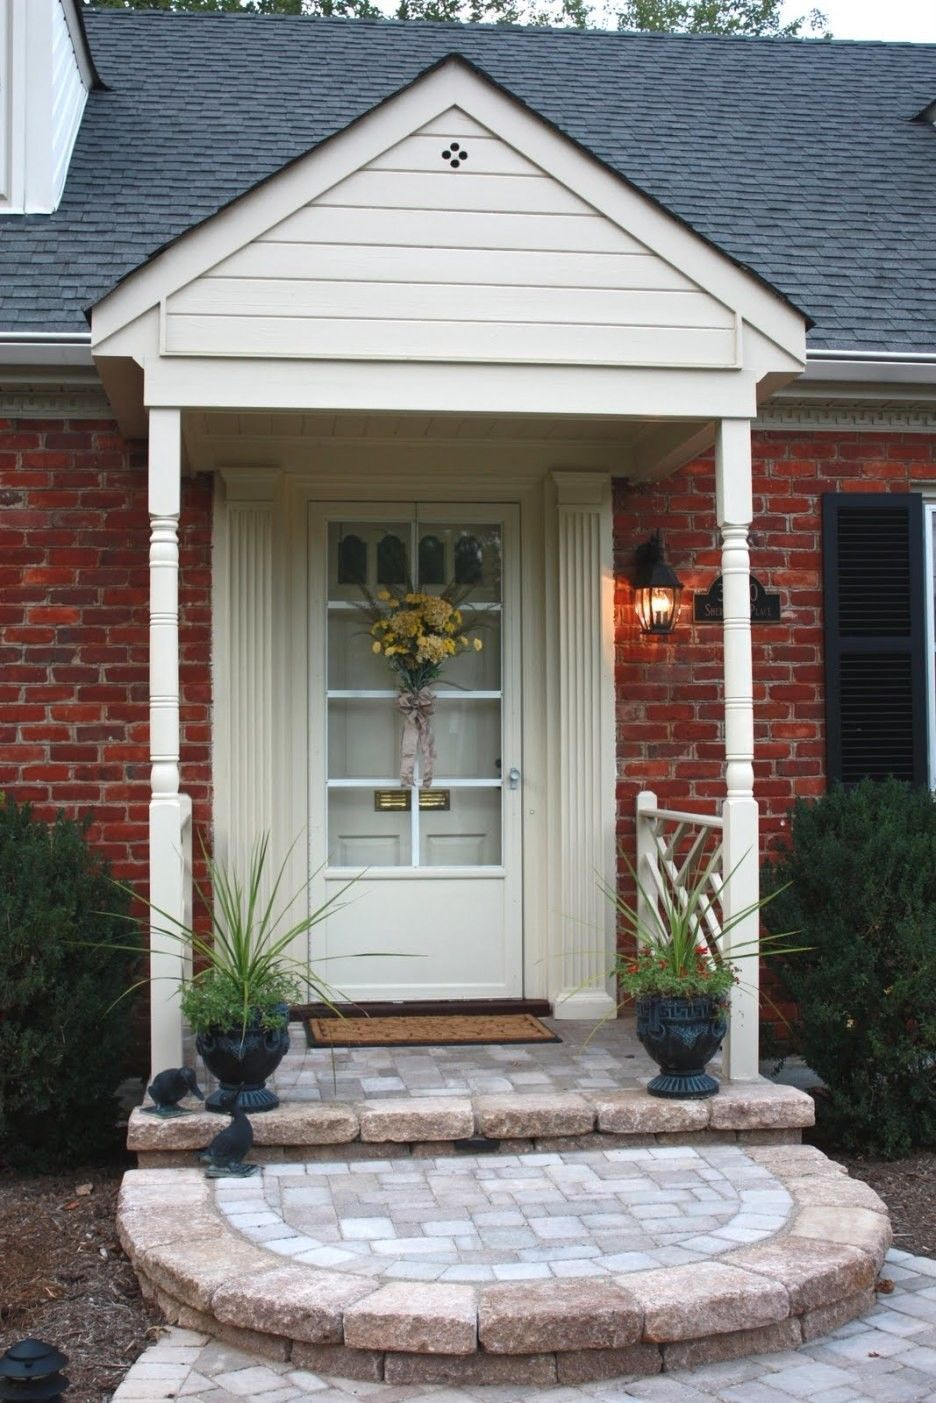 Hausdesign mit zwei schlafzimmern ideas of front porch pavers charming small front porch decoration